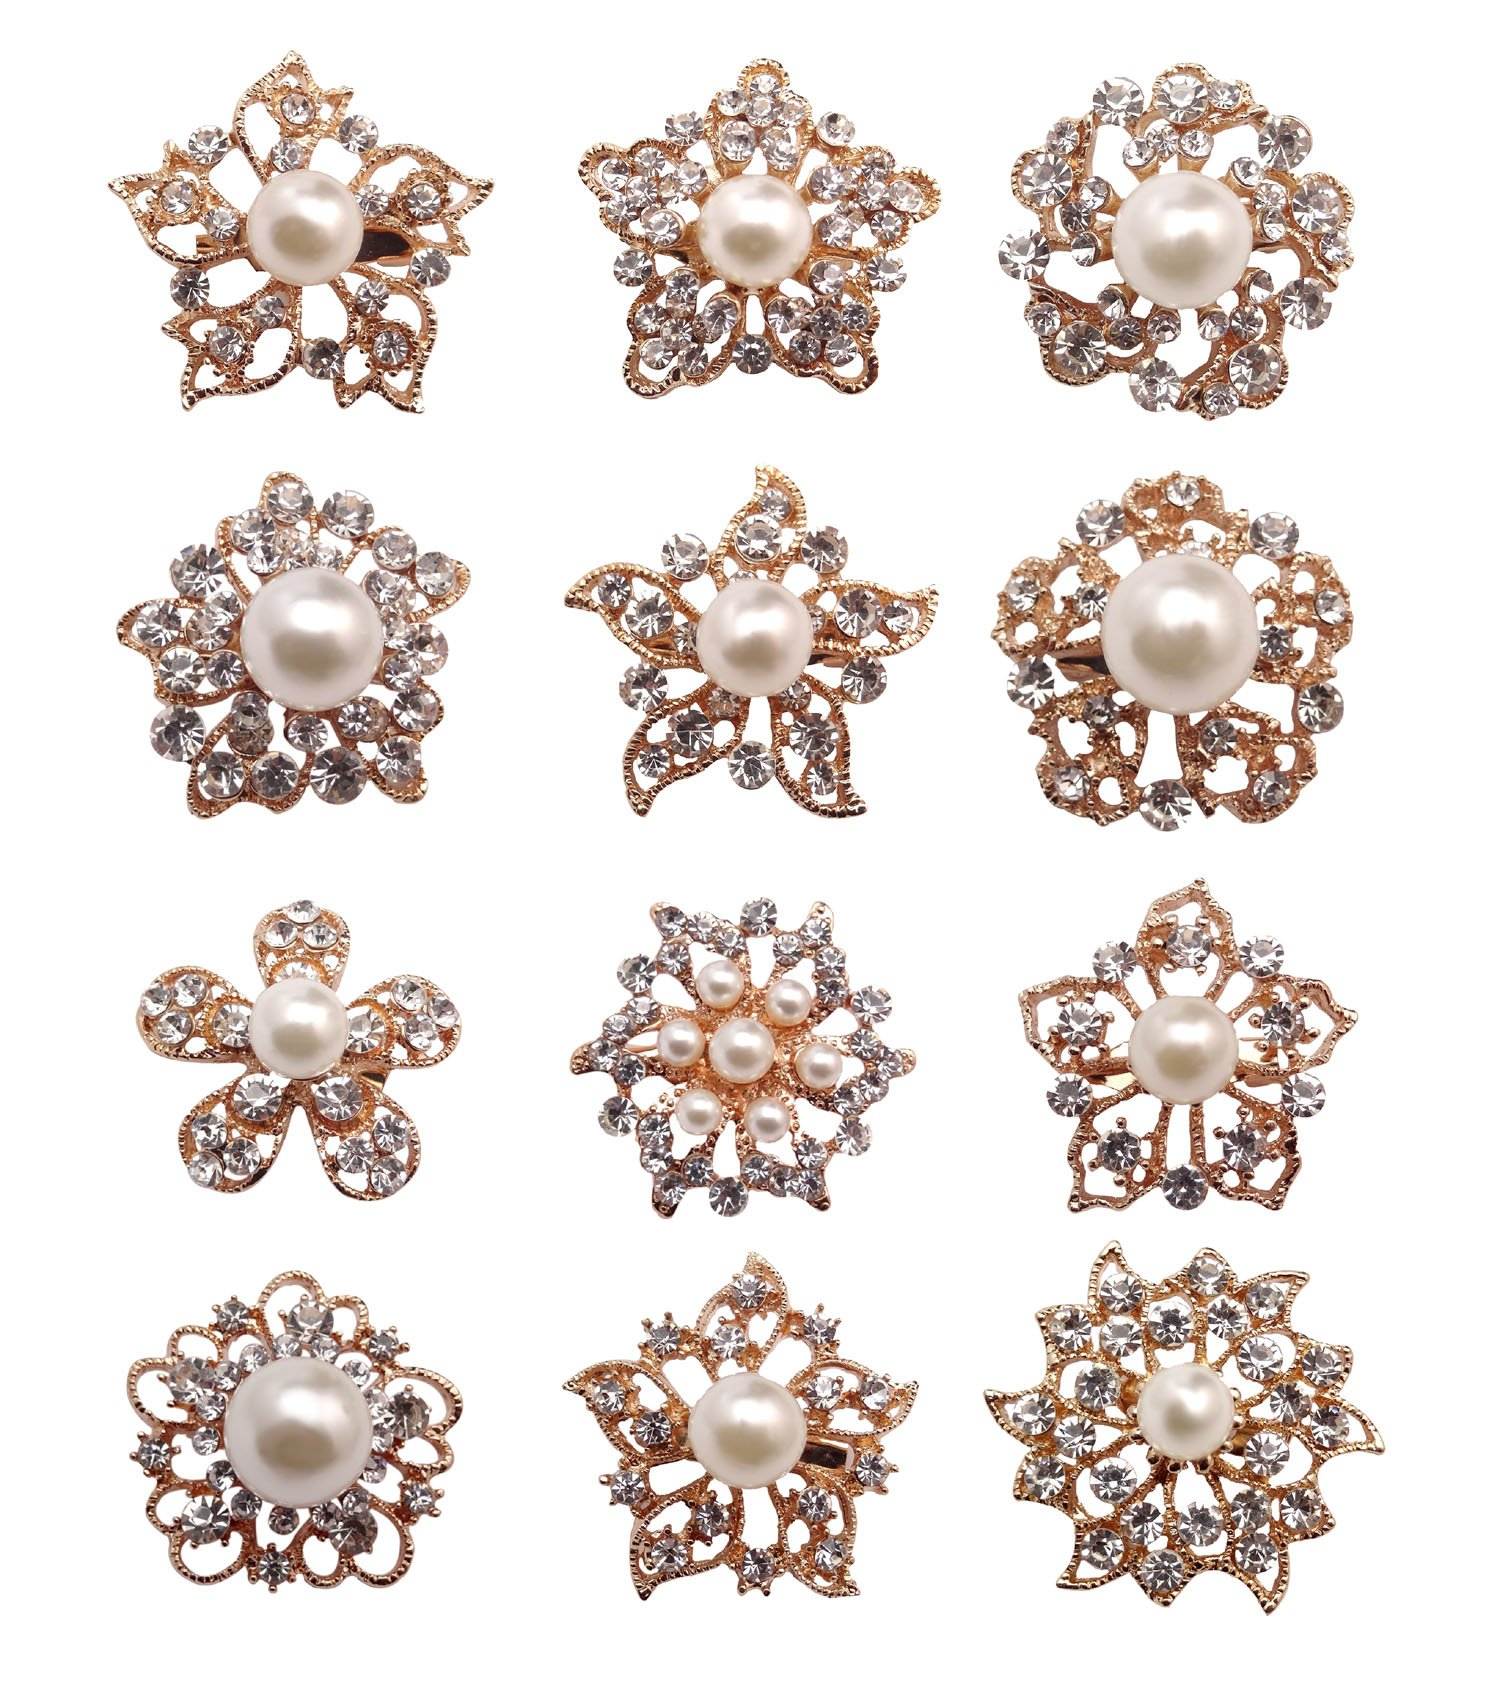 12px Pearl Brooches Mixed Designs Silver or Gold Colors Brooch Pins Wedding Corsage Bride Bouquet Kit (Gold)